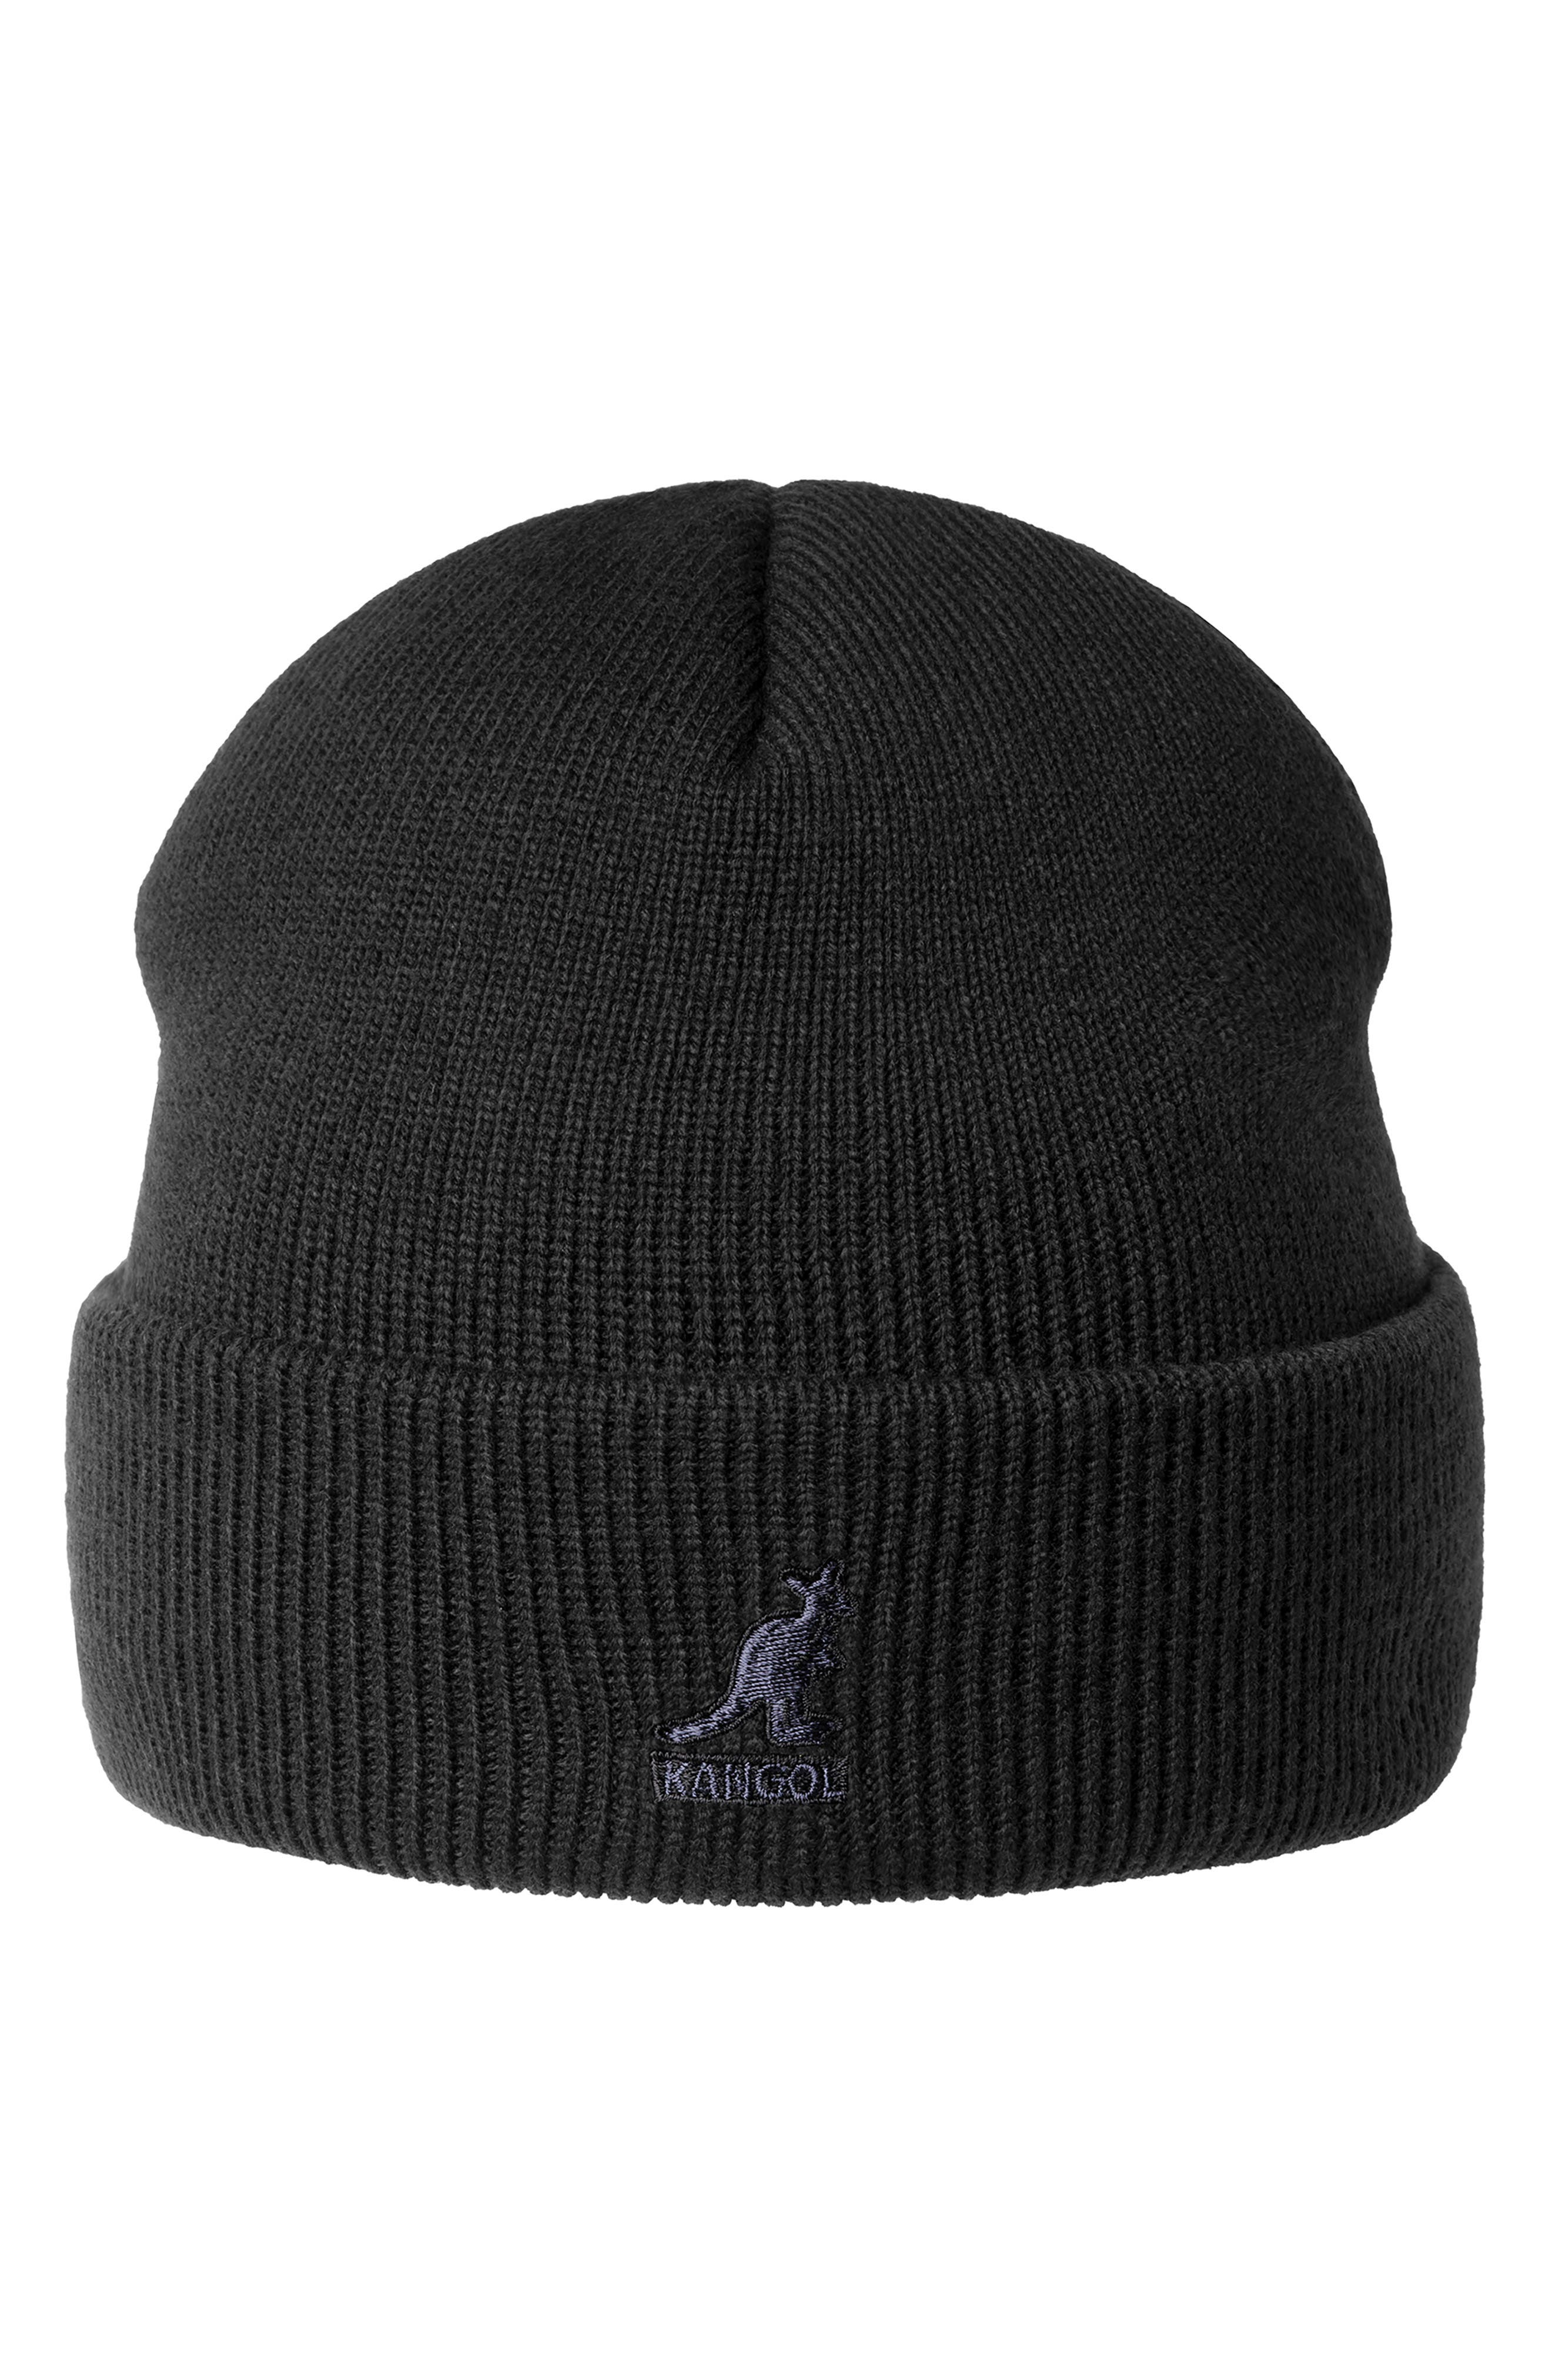 An embroidered logo brands the cuff of a soft, slouchy knit beanie. Style Name: Kangol Beanie. Style Number: 5738287. Available in stores.